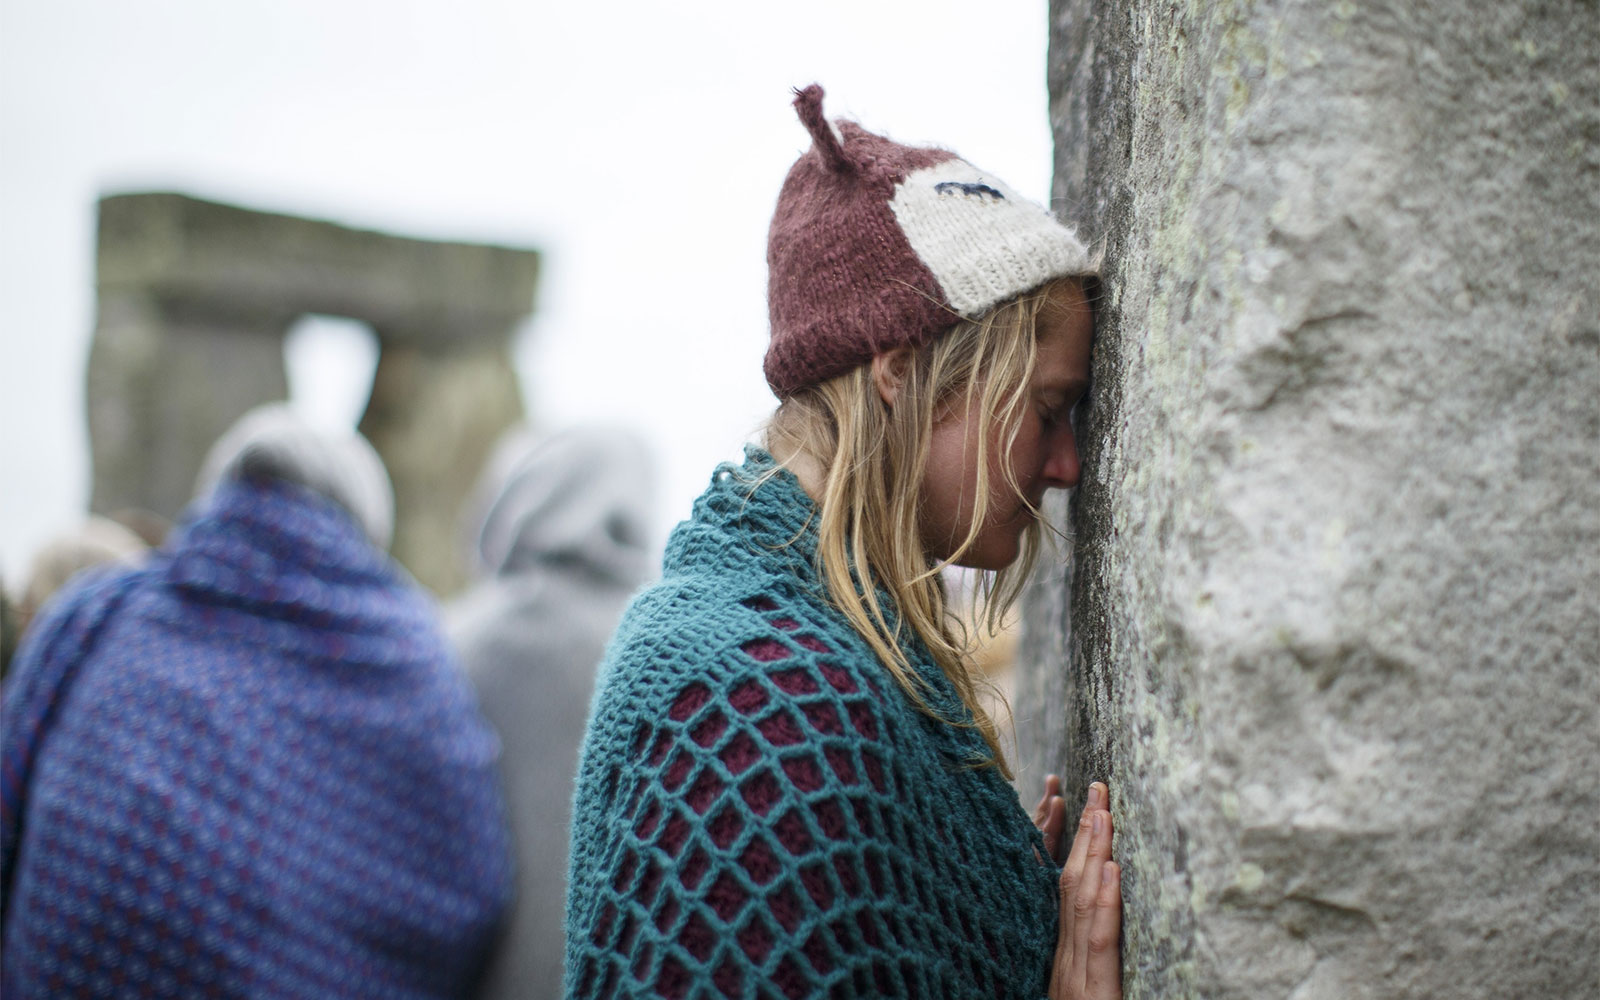 SALISBURY, UNITED KINGDOM - JUNE 21: Revelers embrace the stones of Stonehenge during celebrations to mark the summer solstice at Stonehenge prehistoric monument on June 21, 2015 in Wiltshire, England. Thousands of revellers gather at the 5,000 year old stone circle in Wiltshire to see the sunrise on the Summer Solstice dawn. The solstice sunrise marks the longest day of the year in the Northern Hemisphere. (Photo by Tolga Akmen/Anadolu Agency/Getty Images)